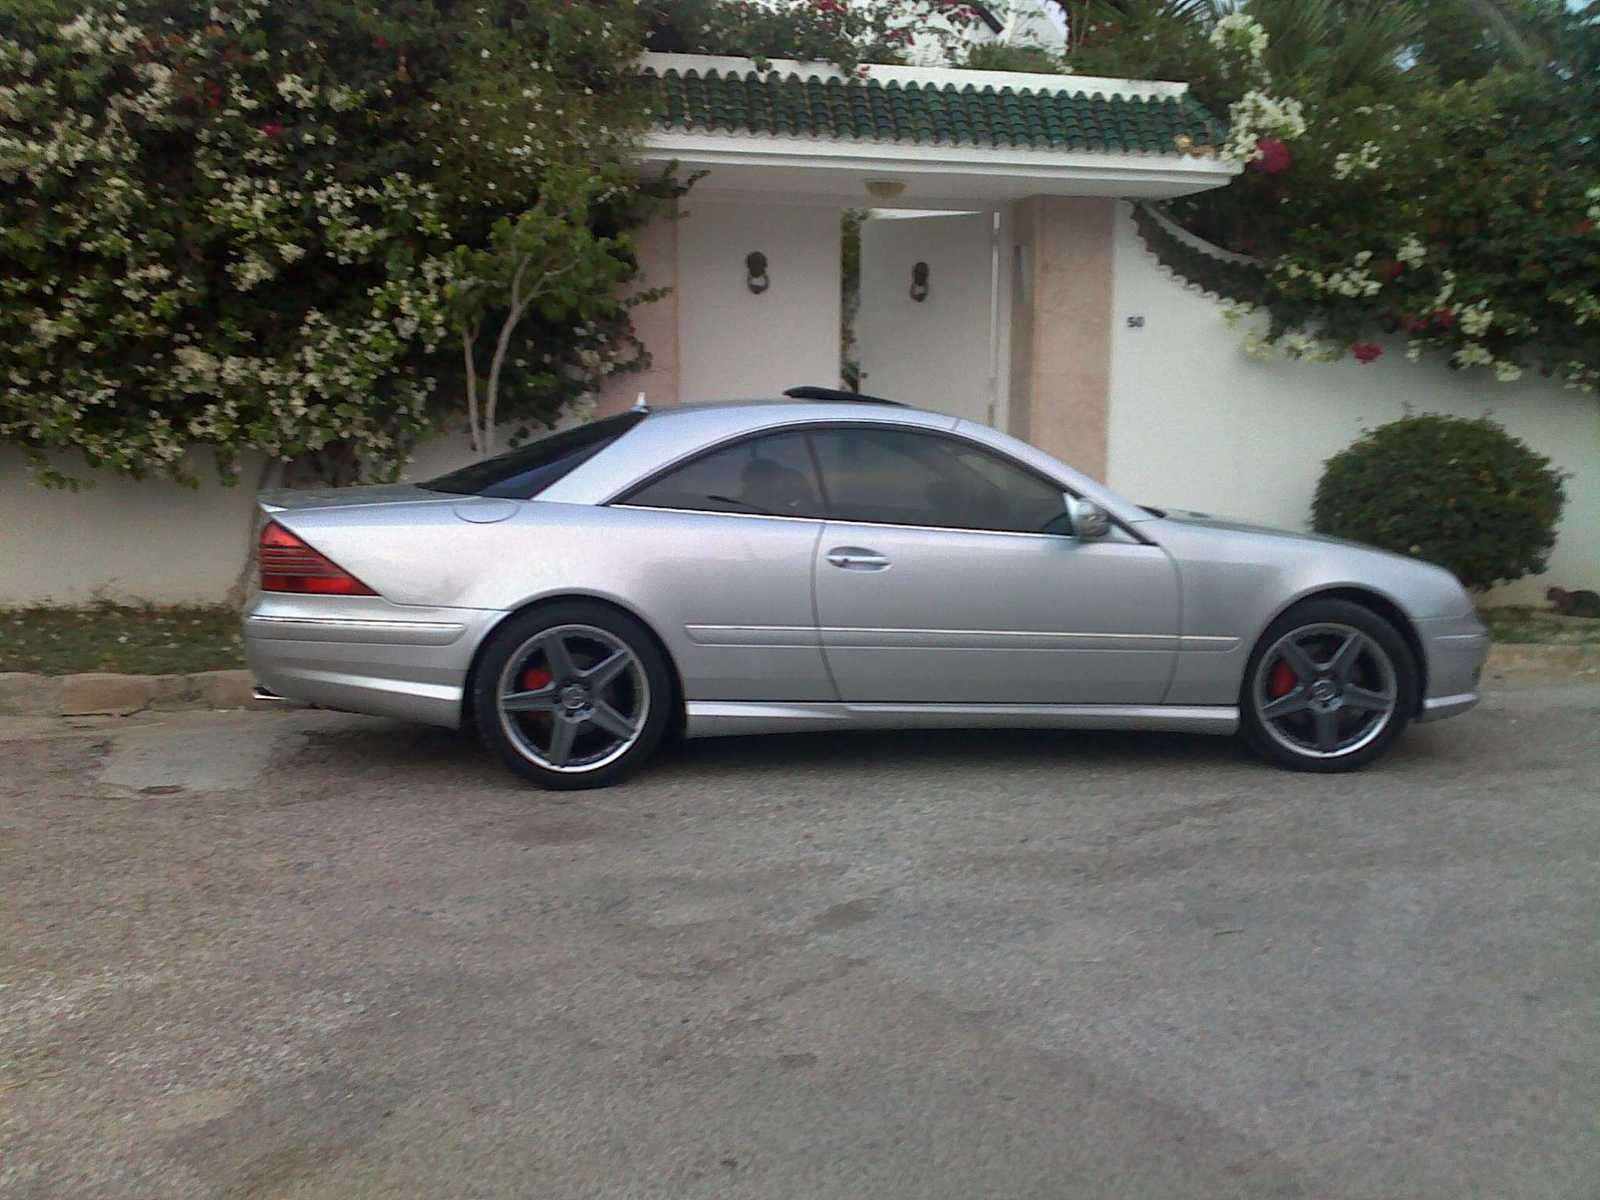 2002 mercedes benz cl class exterior pictures cargurus for Mercedes benz cl55 amg price